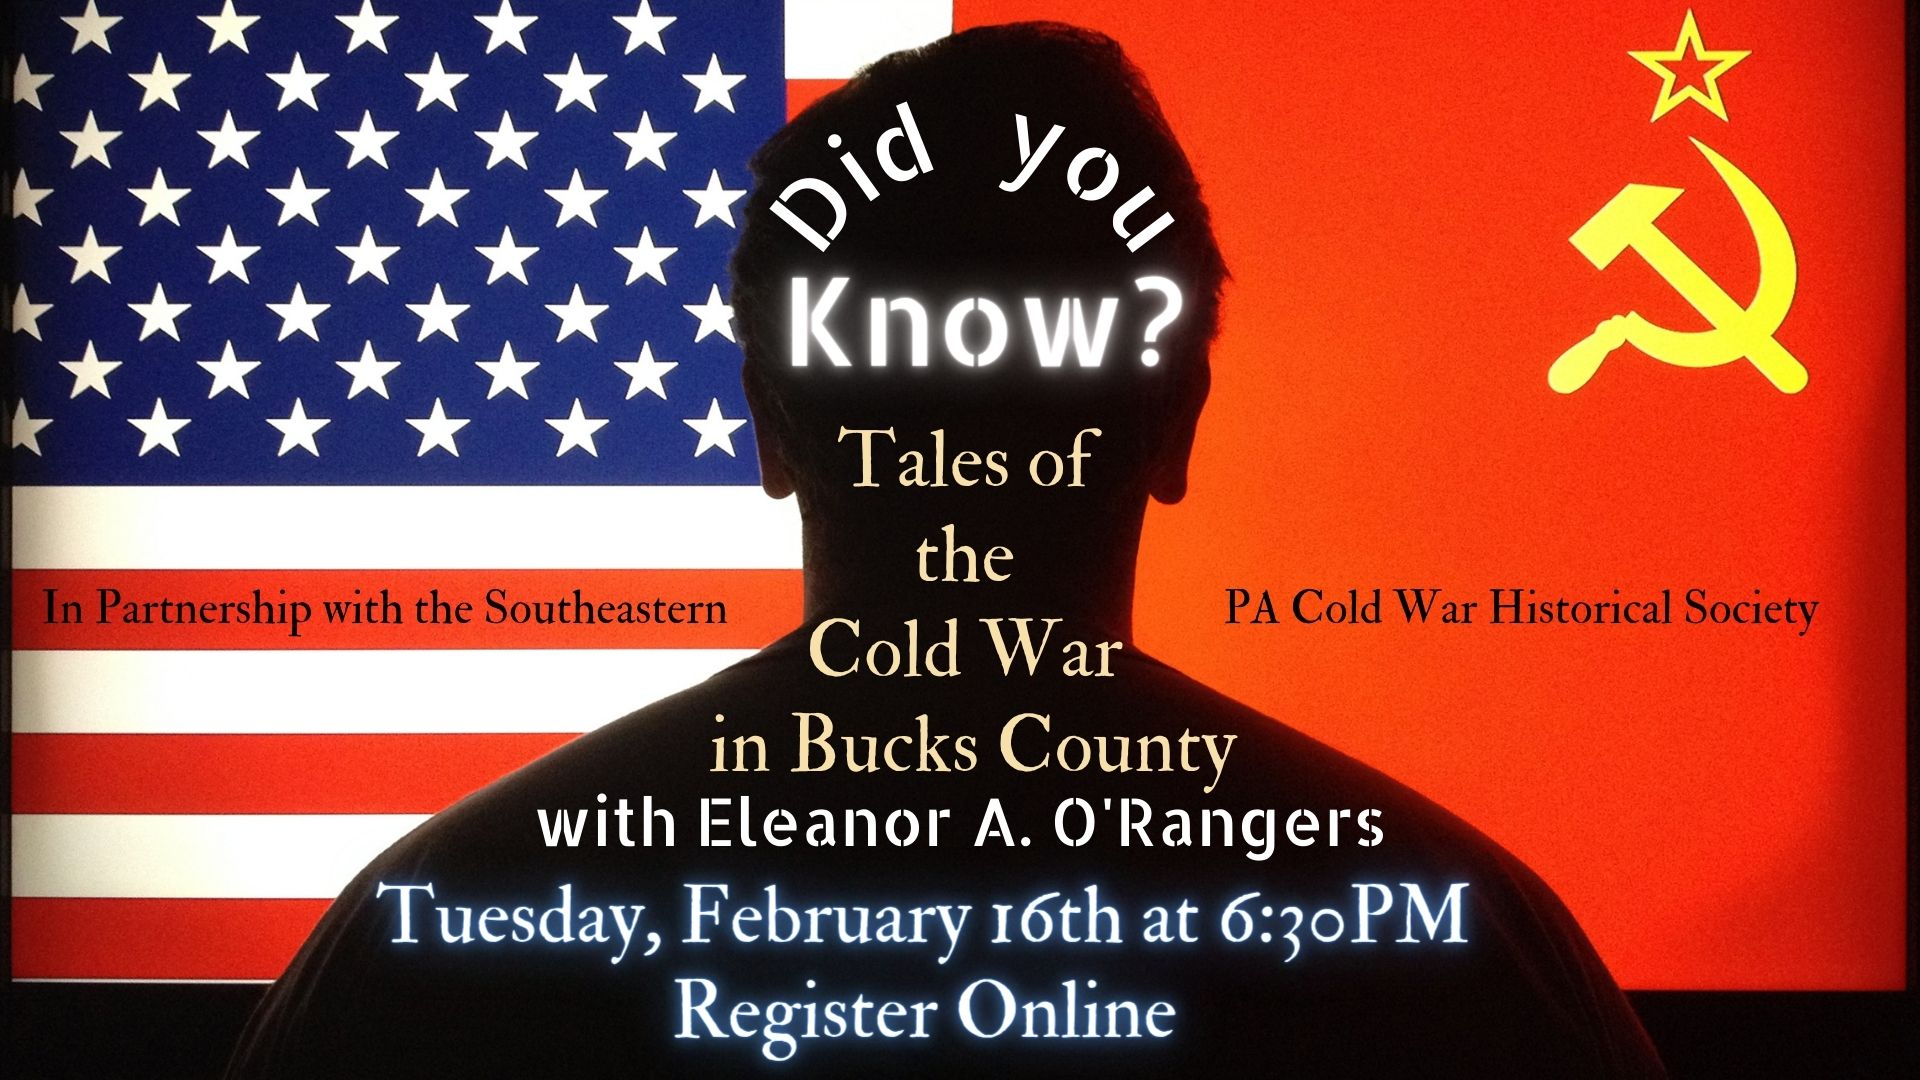 Did You Know?  The Cold War in Bucks County